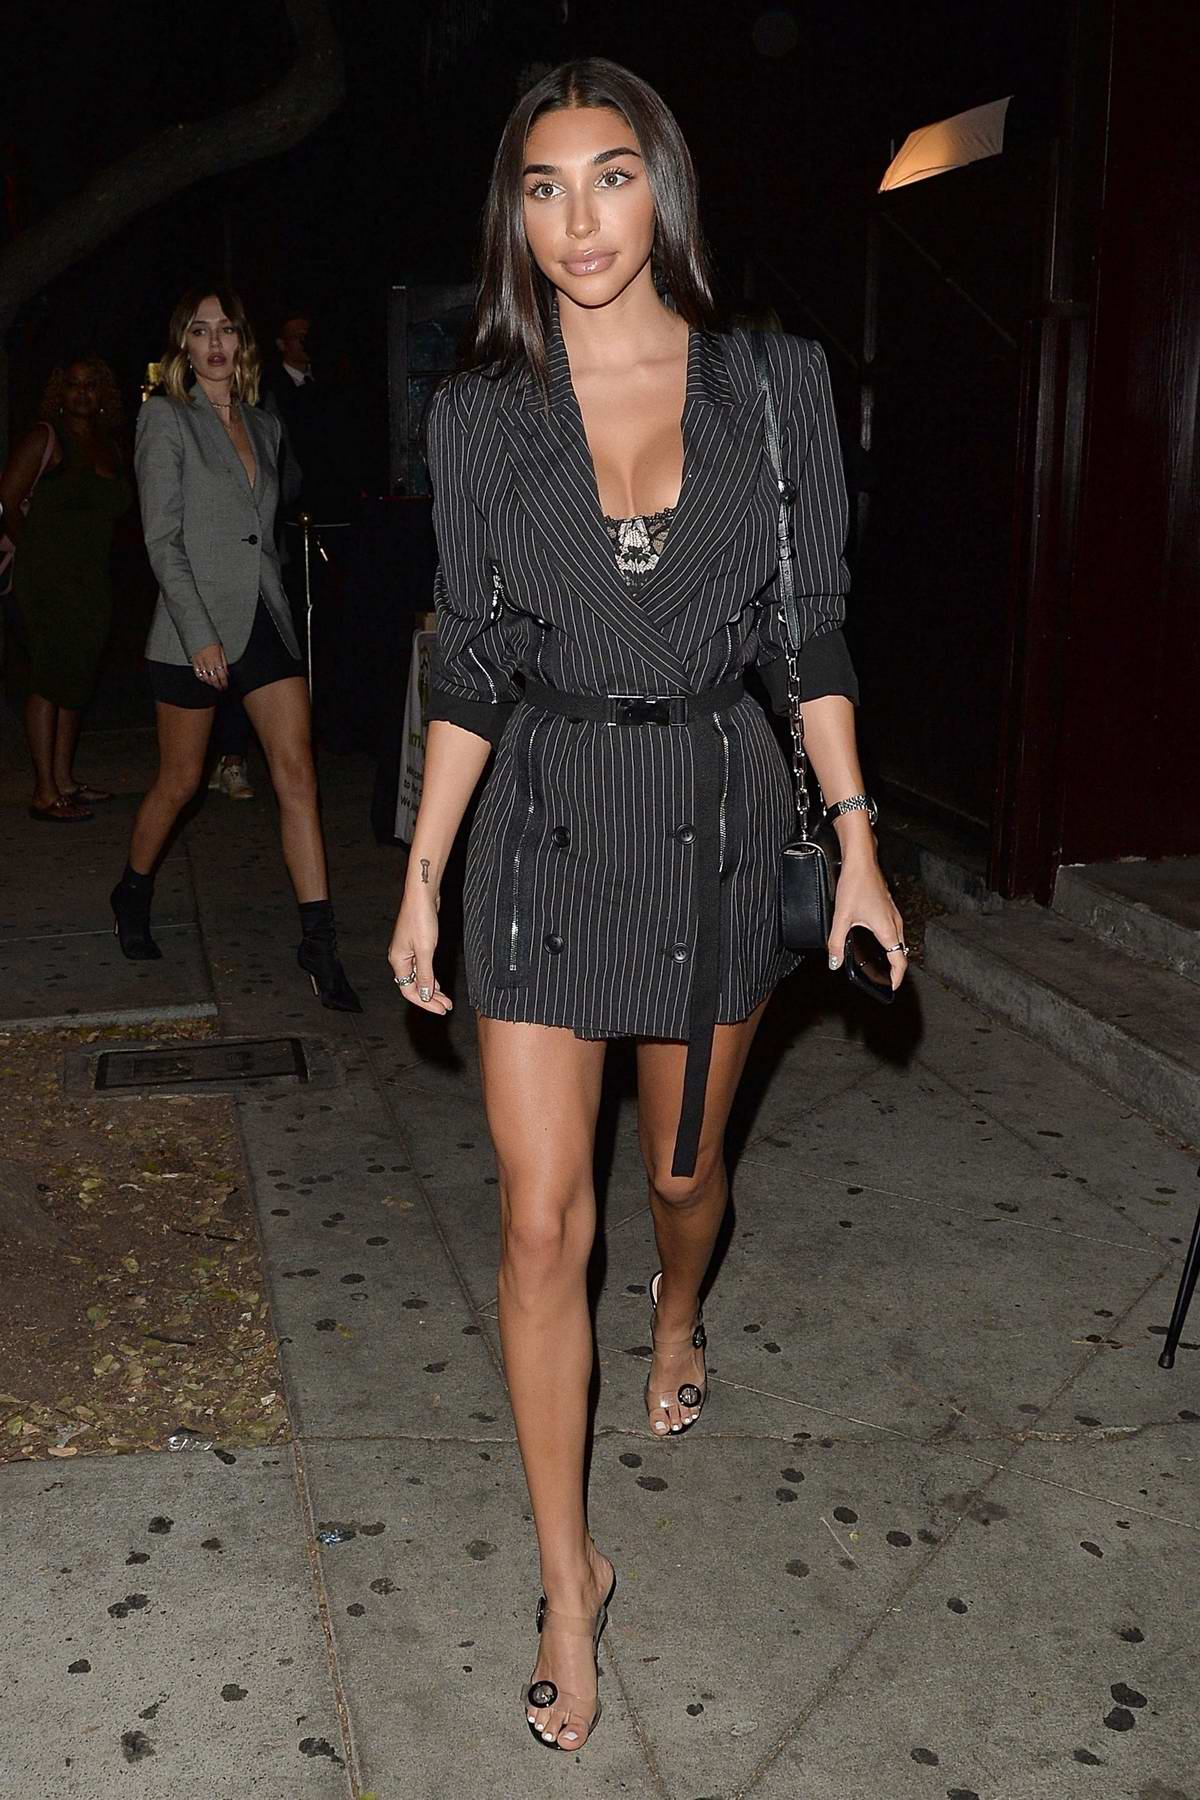 Chantel Jeffries wears a short pinstriped black dress as she heads for a night out in West Hollywood, Los Angeles